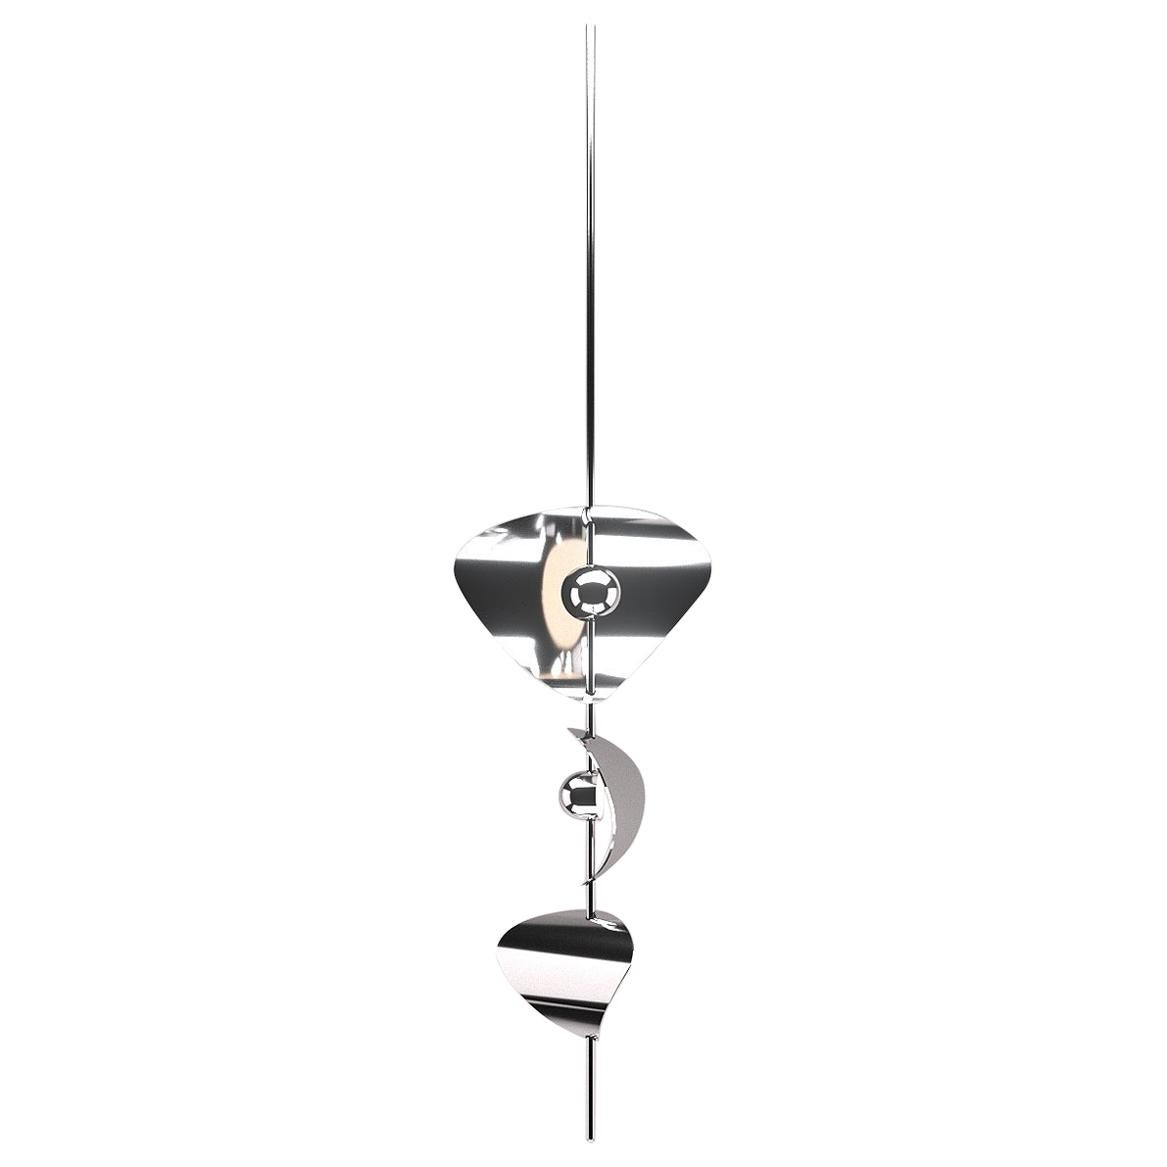 Bonnie Config 1 Contemporary LED Chandelier, Solid Brass or Chromed, Large, Art